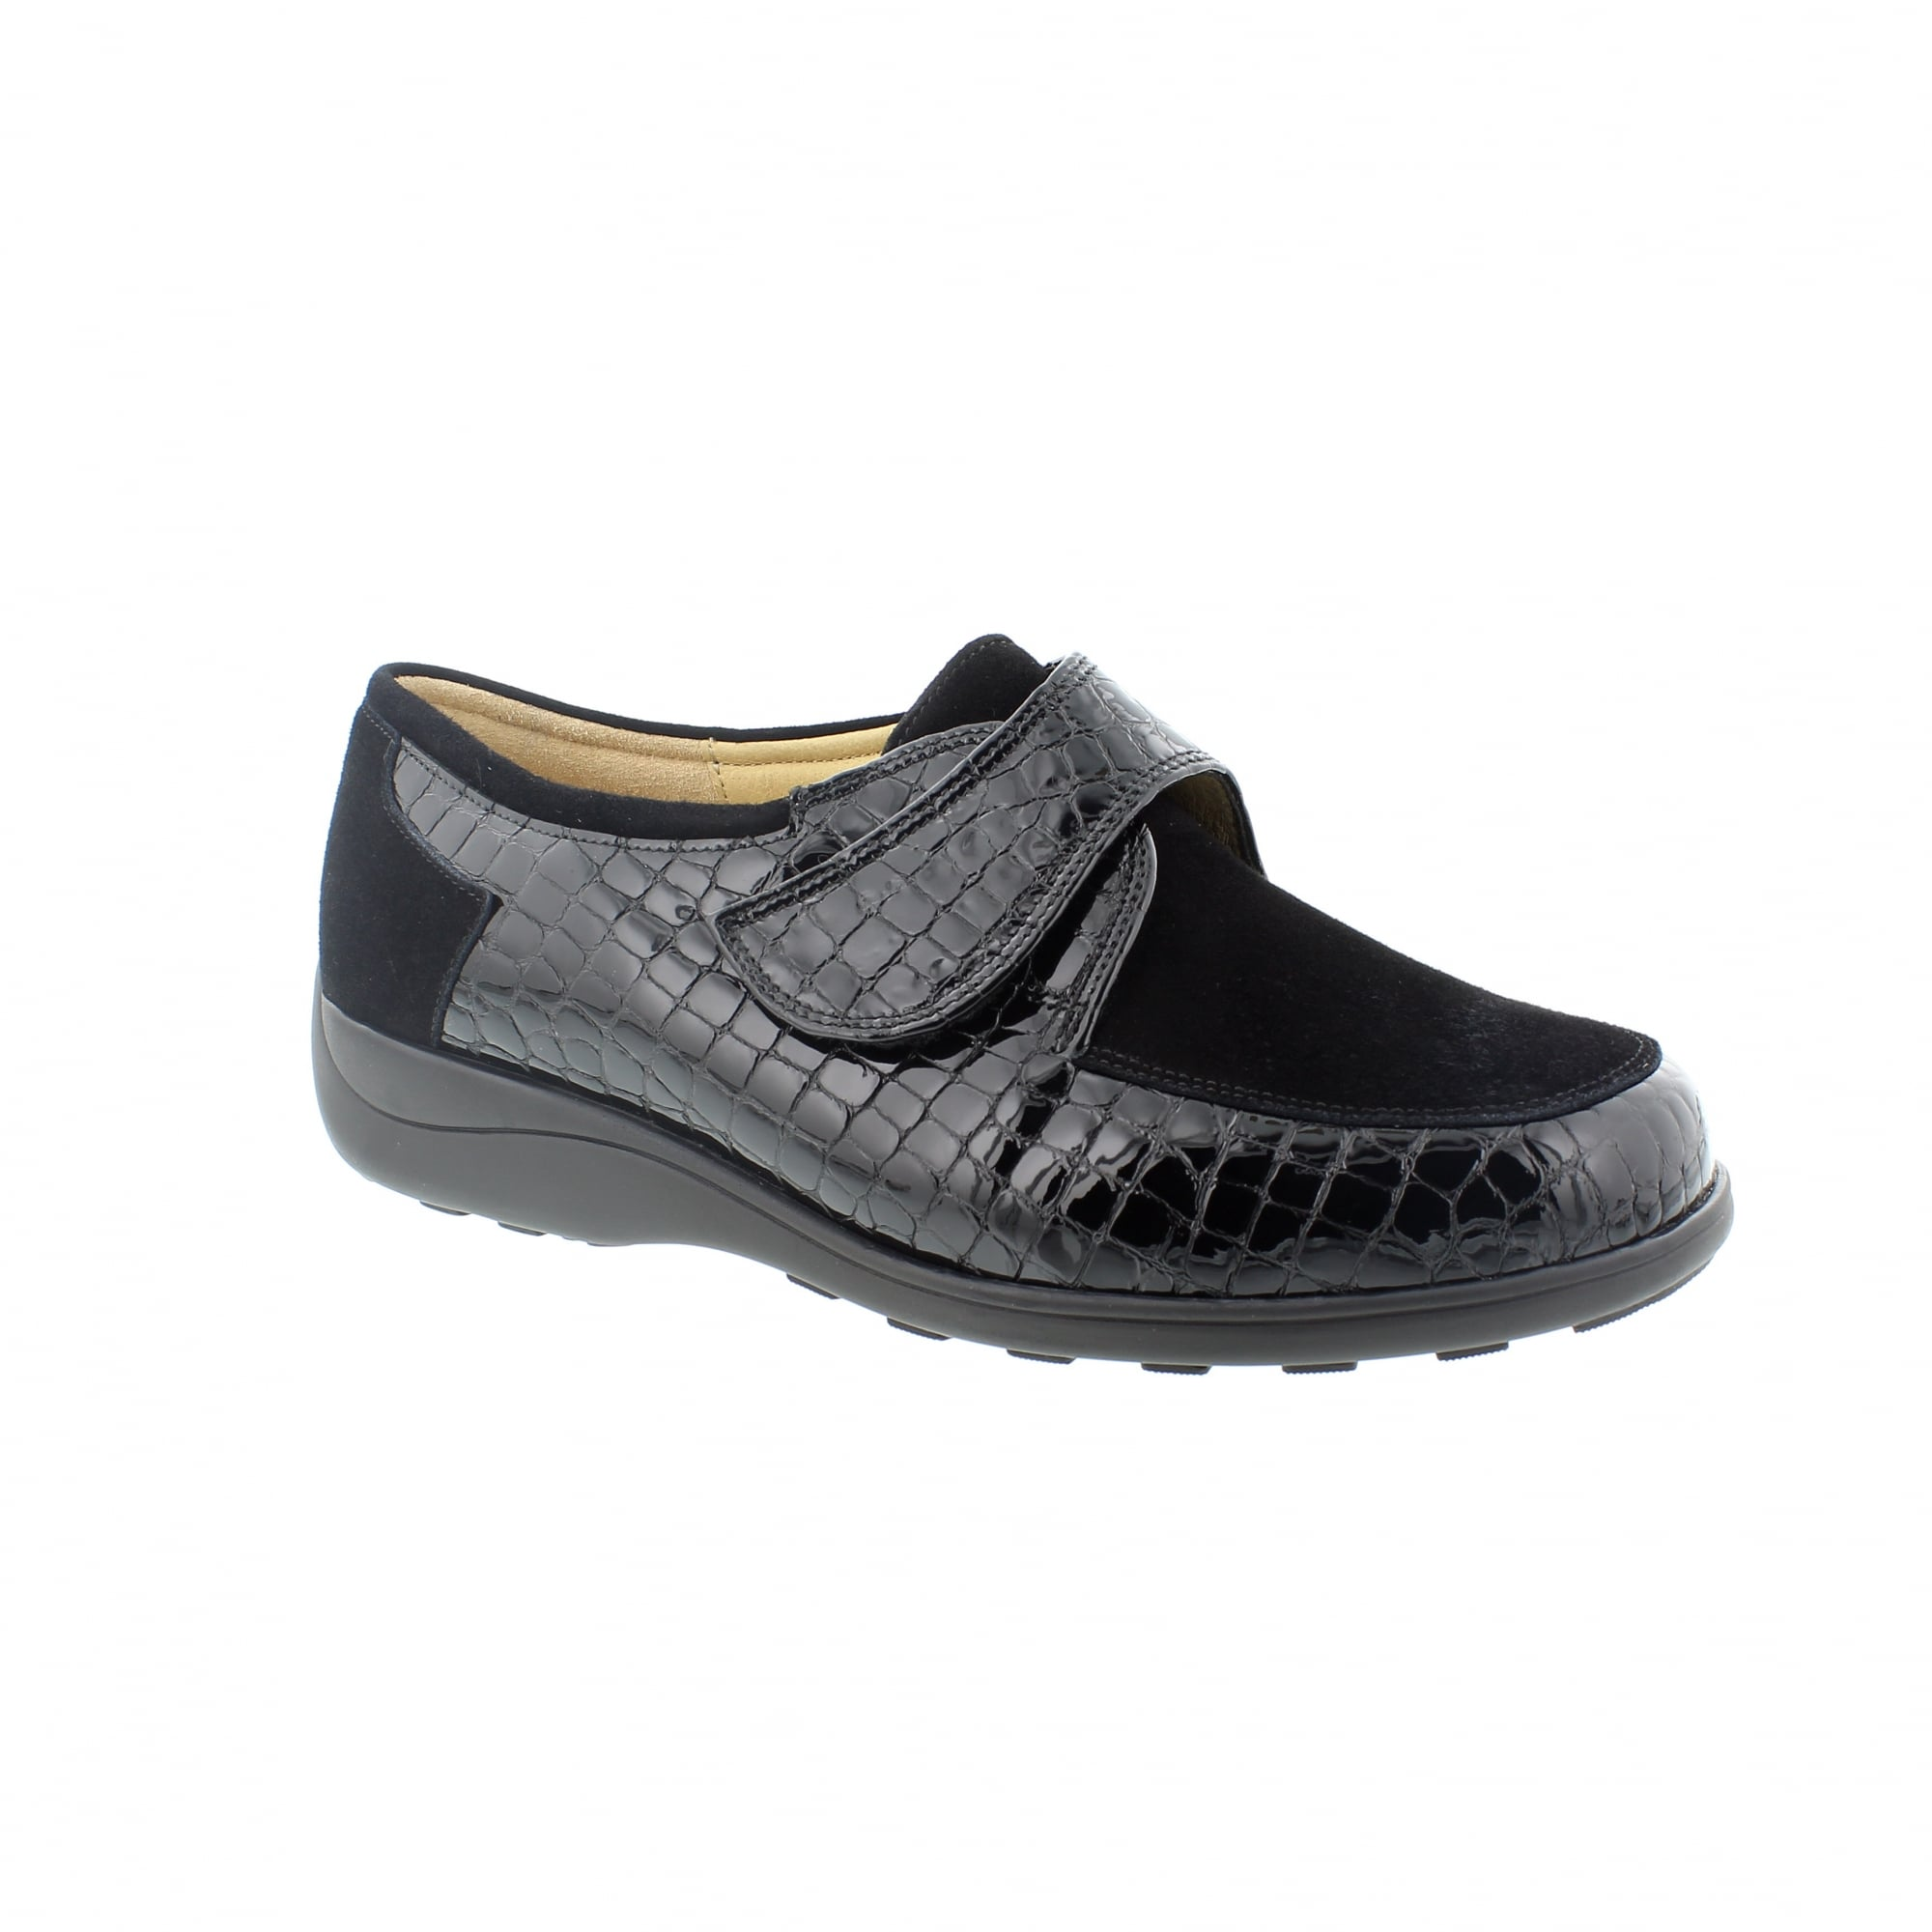 a936b393df9 Christian Dietz Cortina 0486781-42 Womens Shoes